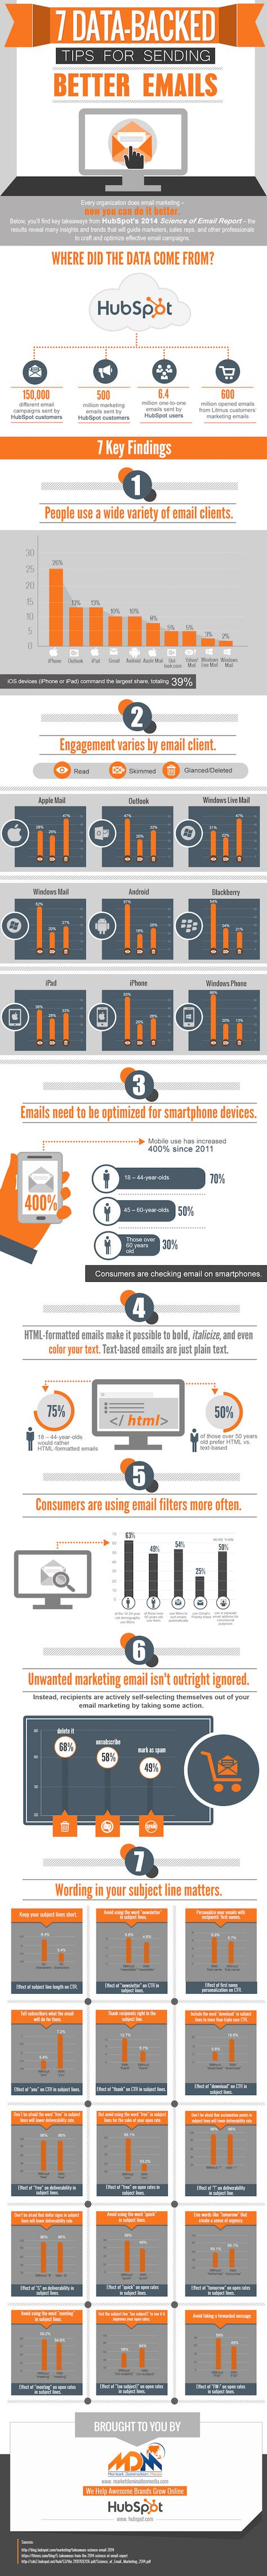 Seven Data-Backed Tips to Increase Email Conversion Rates